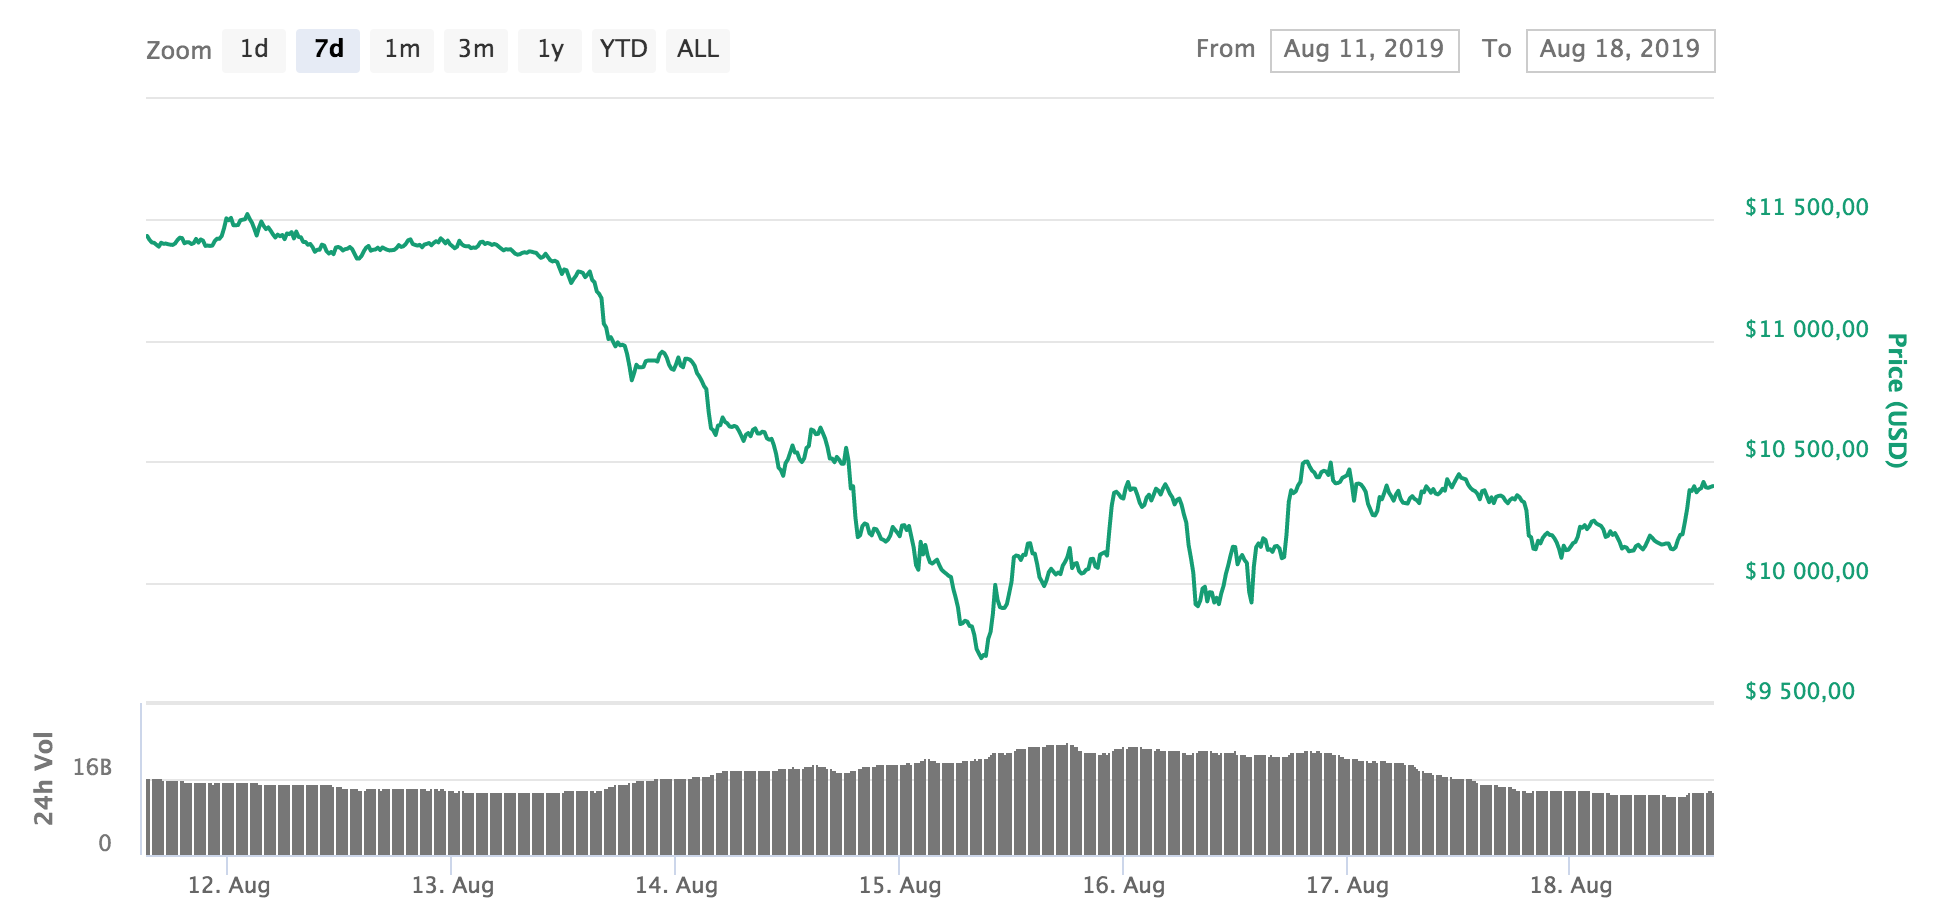 Bitcoin price 12-18 august 2019.